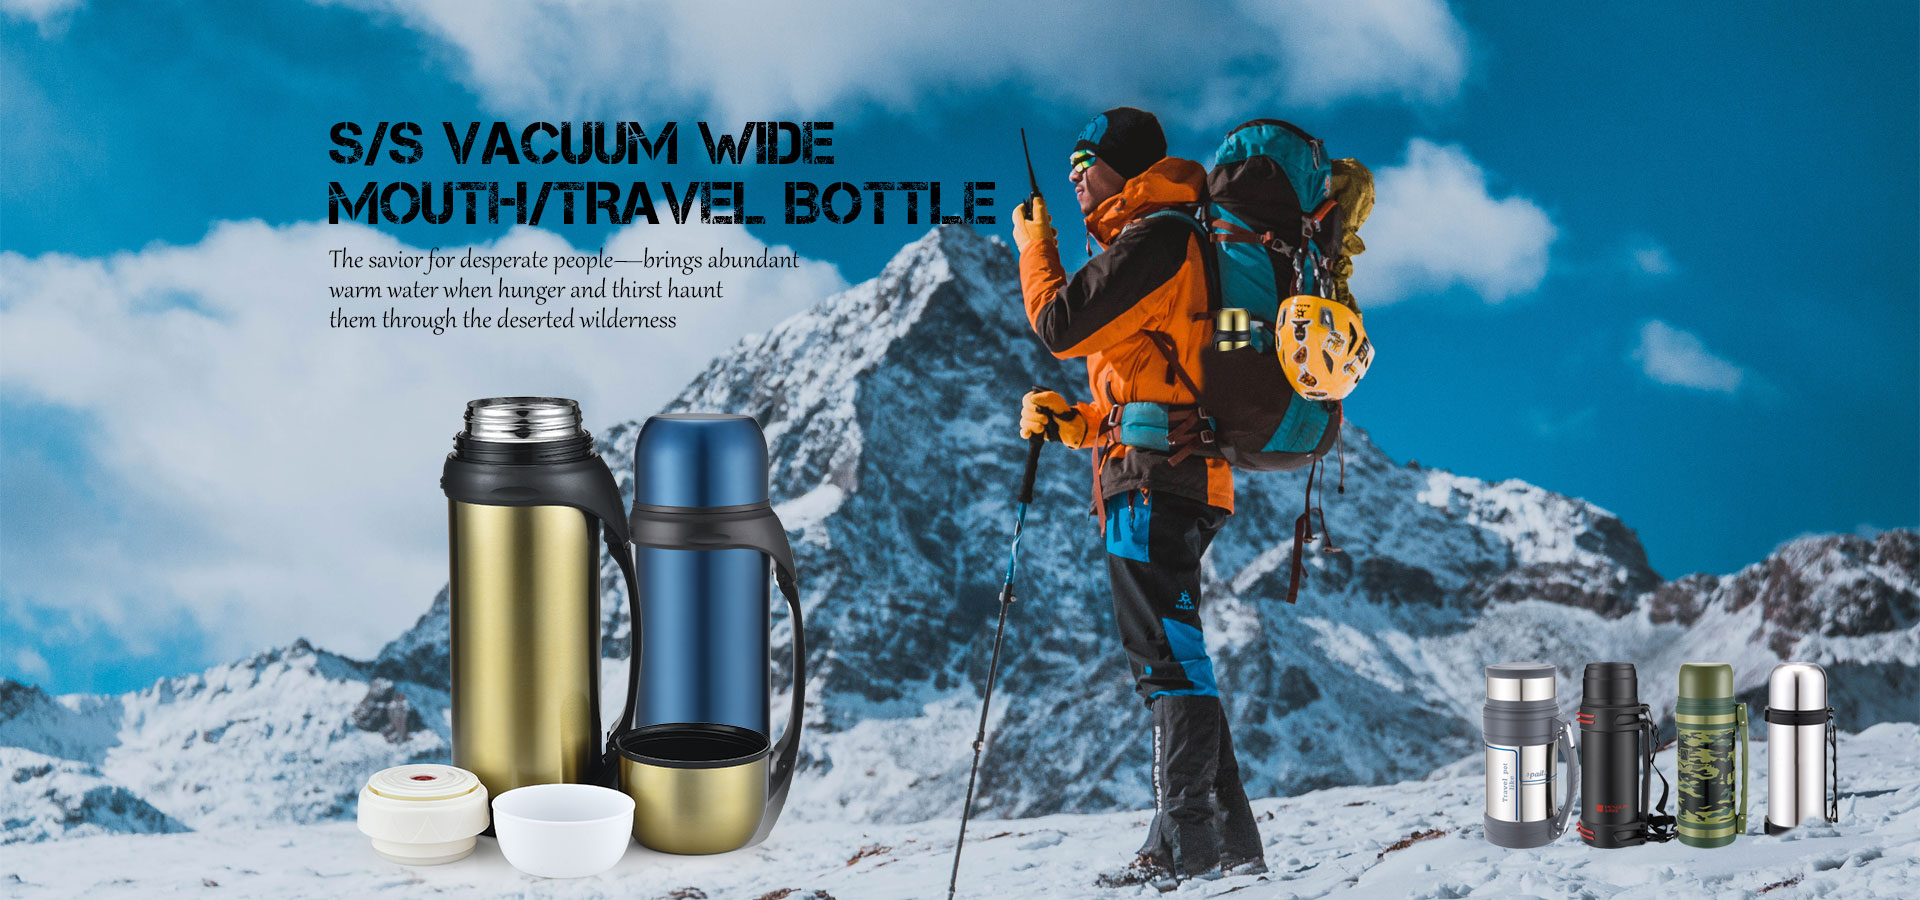 S/S VACUUM WIDE MOUTH/TRAVEL BOTTLE